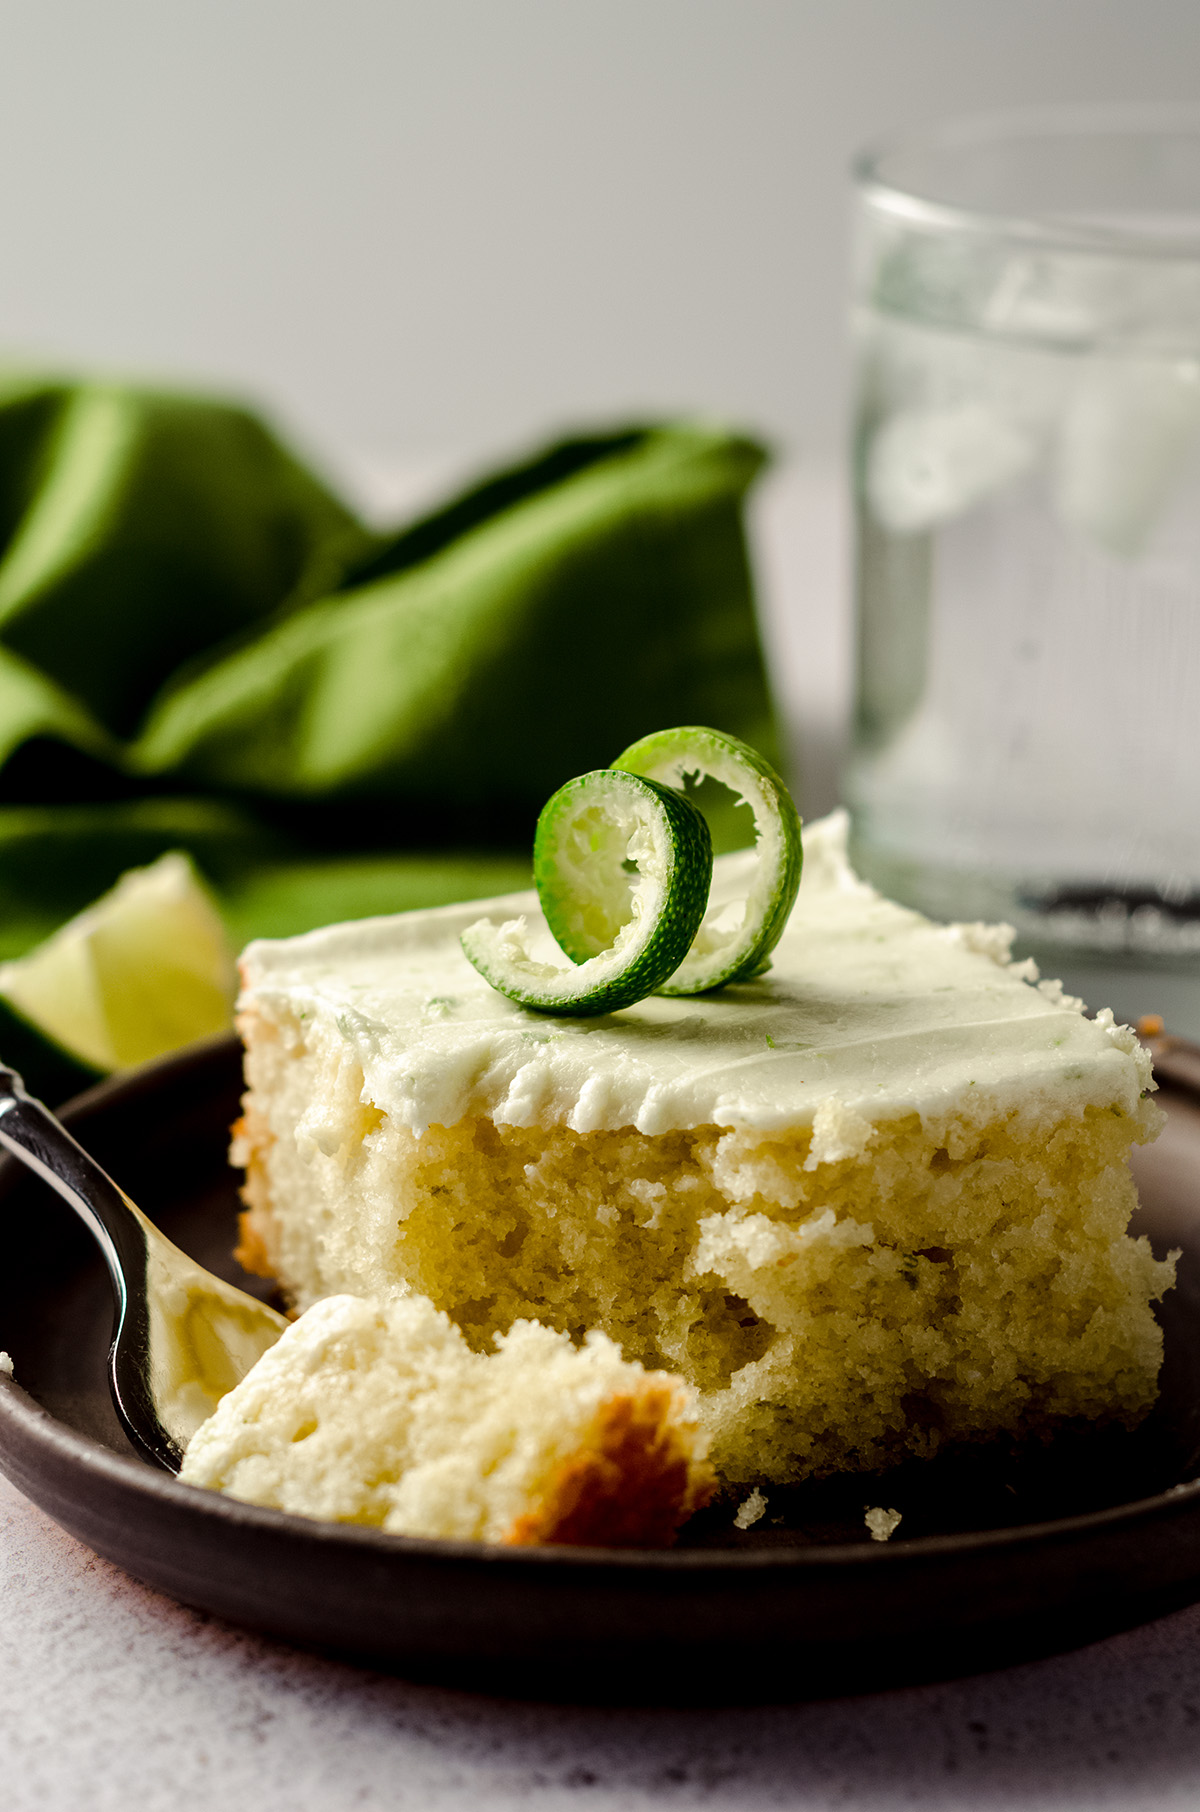 slice of gin and tonic cake sitting on a plate with a fork and a bite taken out of it